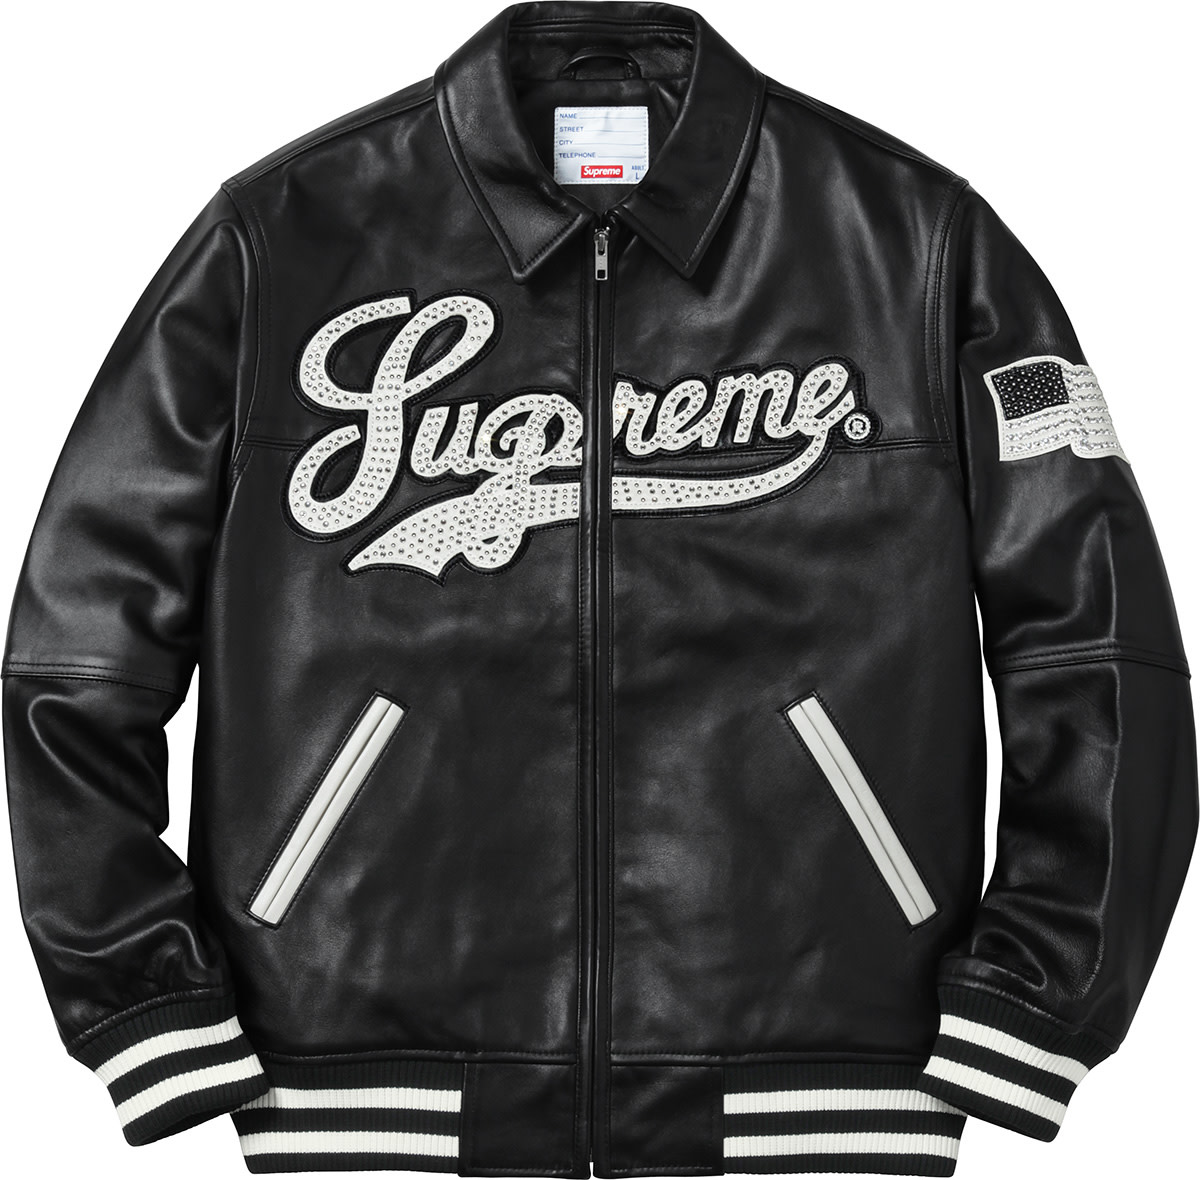 supreme-spring-summer-2016-leather-varsity-jacket.jpg